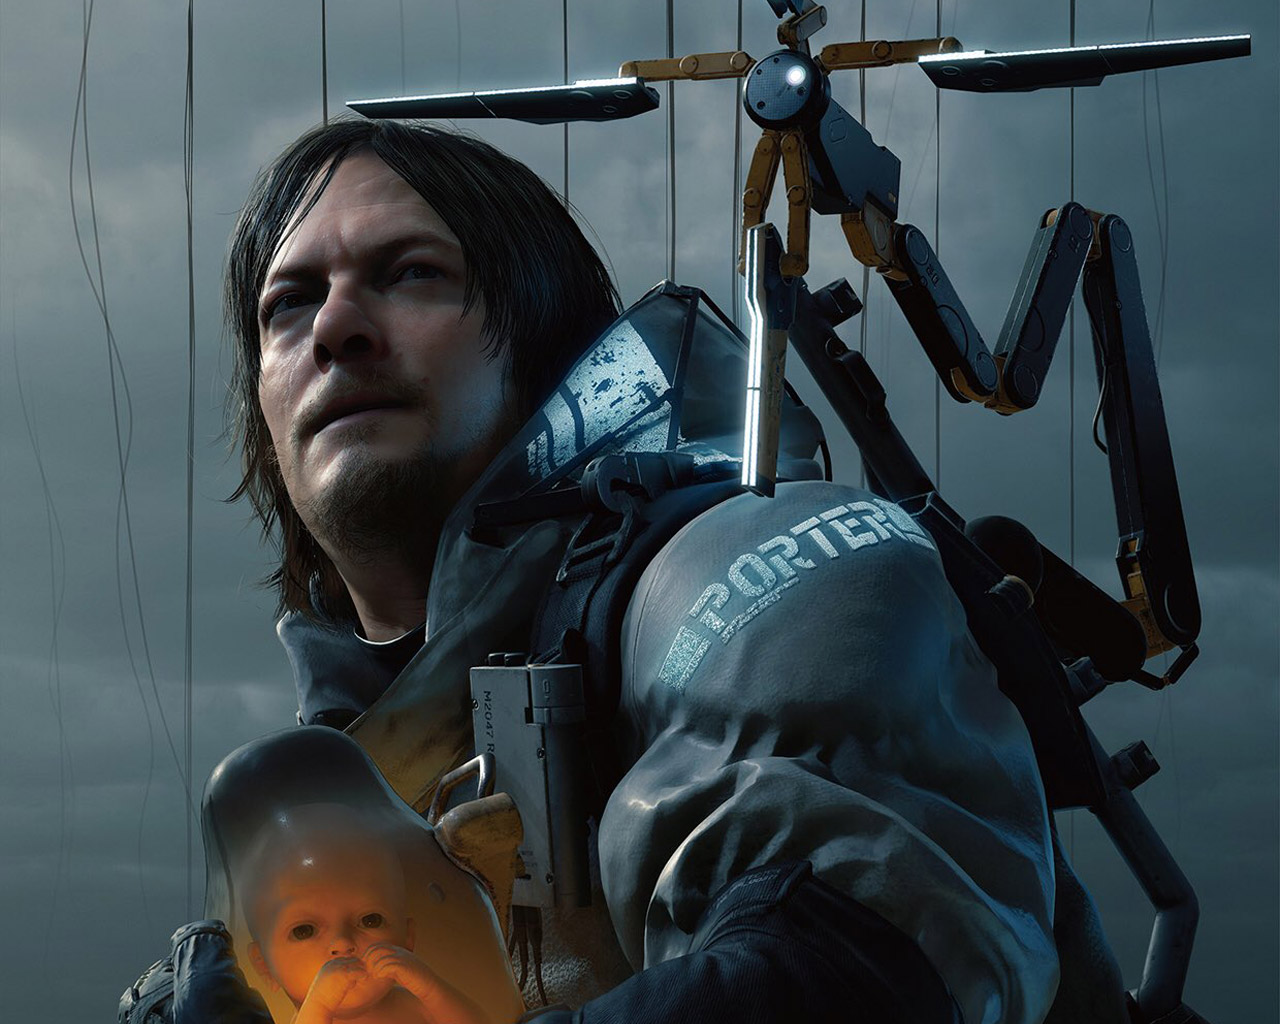 Free Death Stranding Wallpaper in 1280x1024